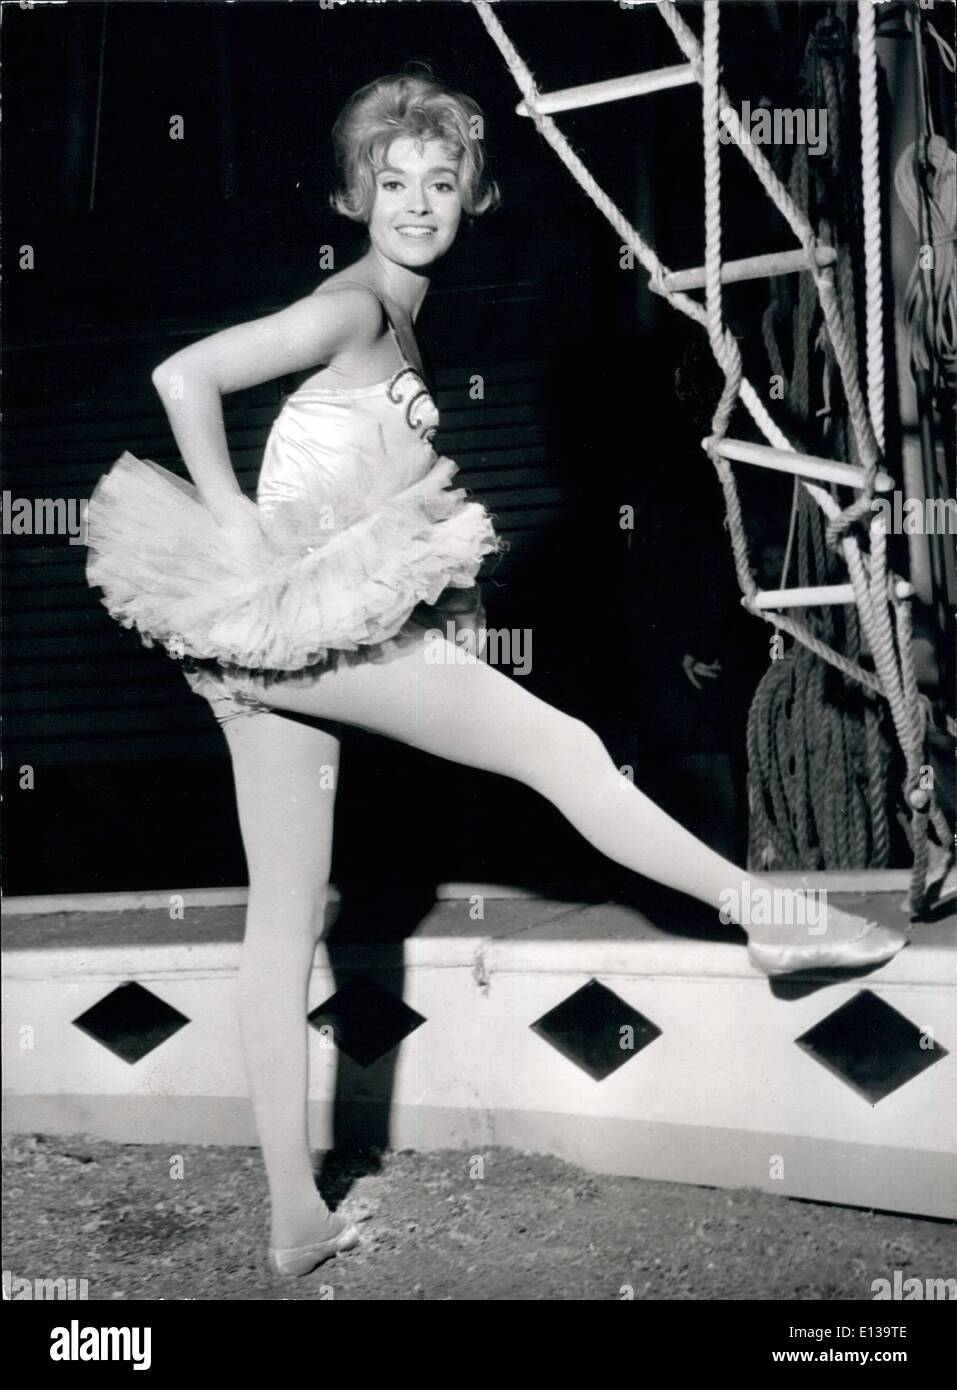 Feb. 29, 2012 - Ballet beneath the big top: Meet lovely Yvonne Monlaur who stars as a French Equestrienne Dallerina in ''Circus - Stock Image